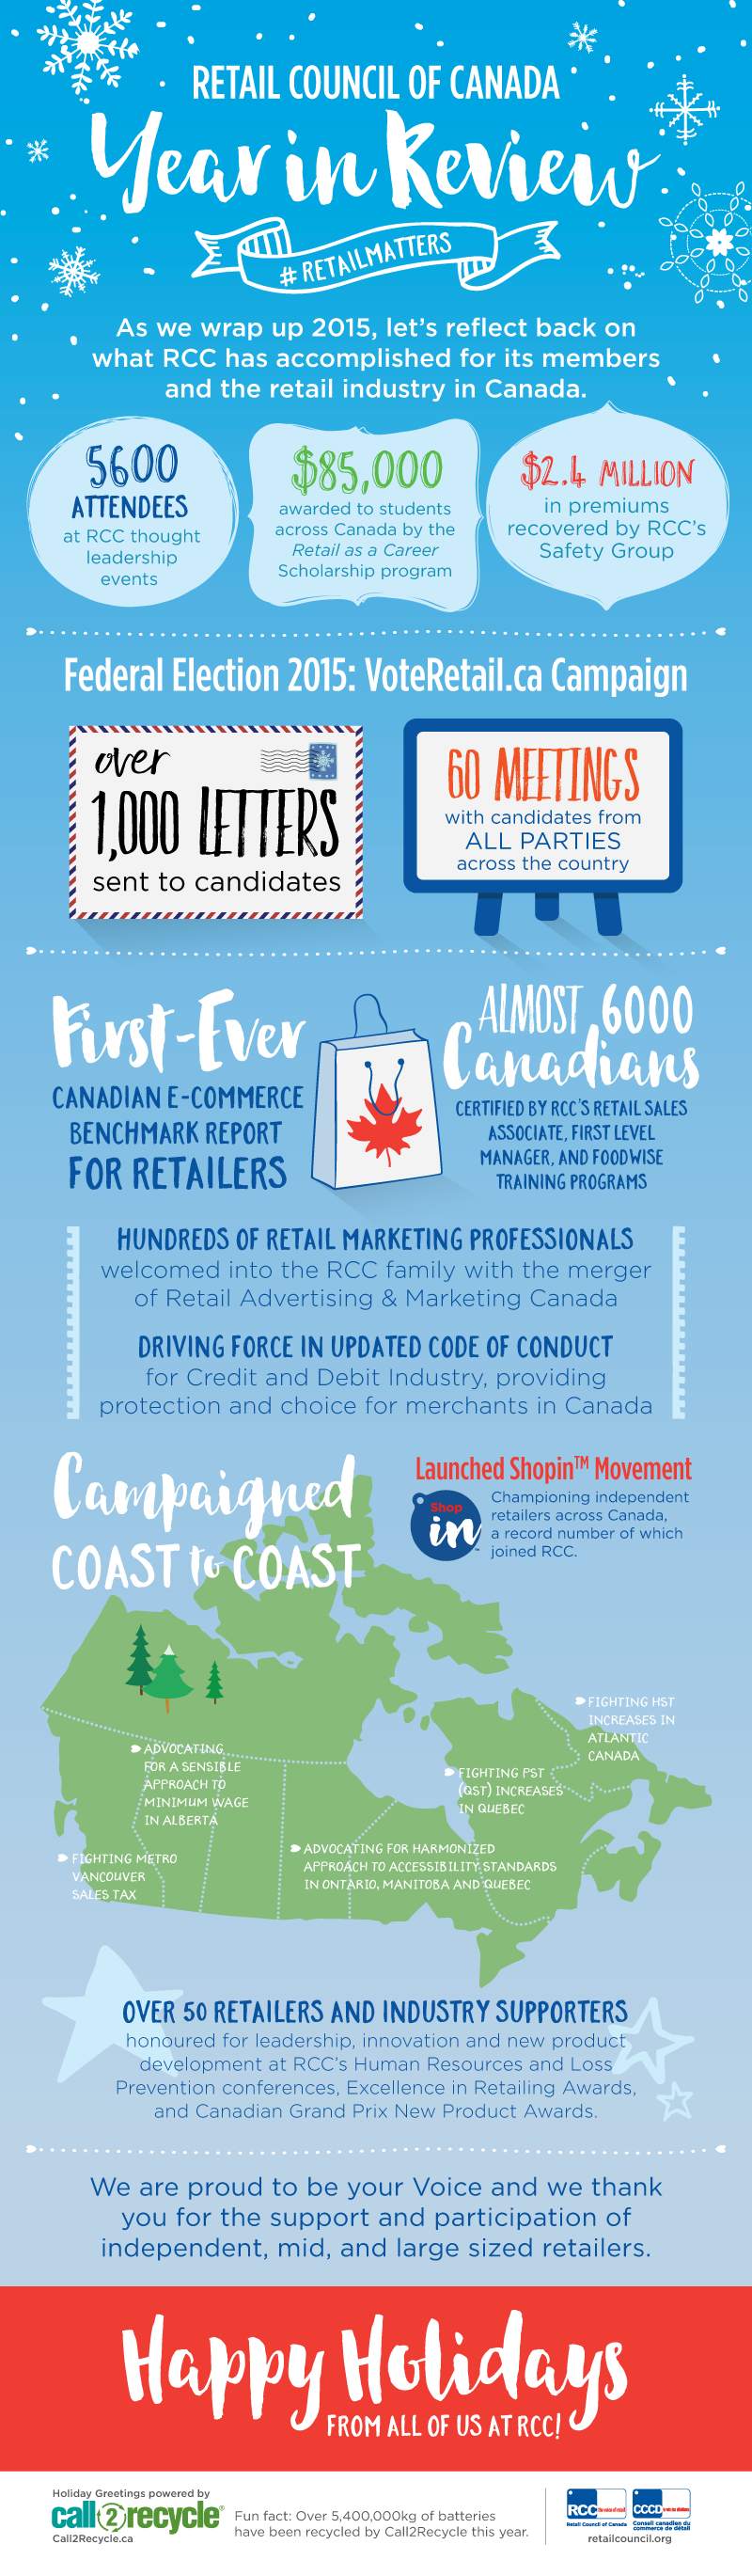 Designed as a holiday message + an engaging way to summarize Retail Council of Canada's annual accomplishments to its members